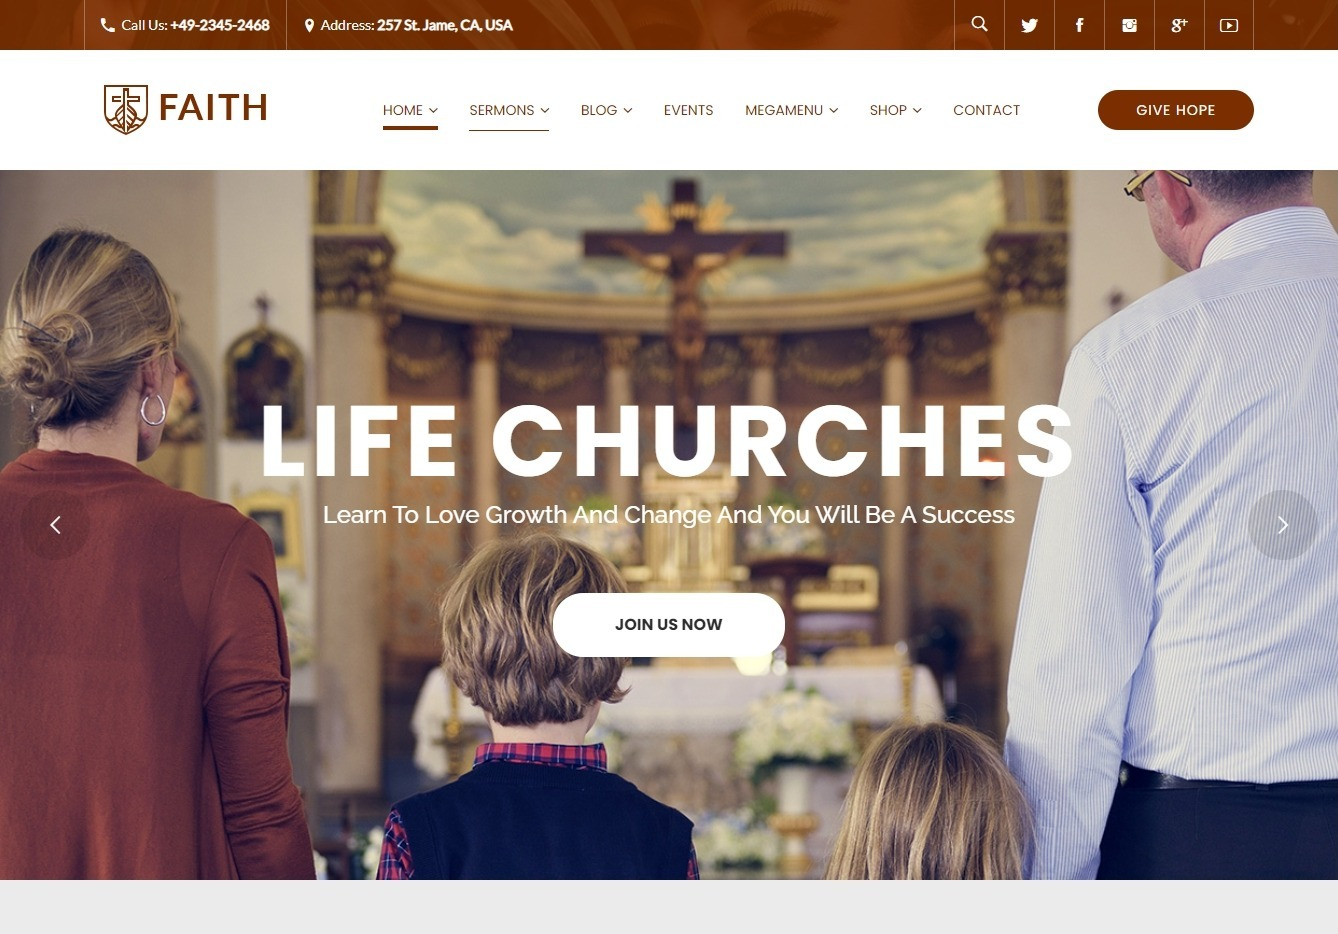 Life Churches WordPress Theme for Churches and Events